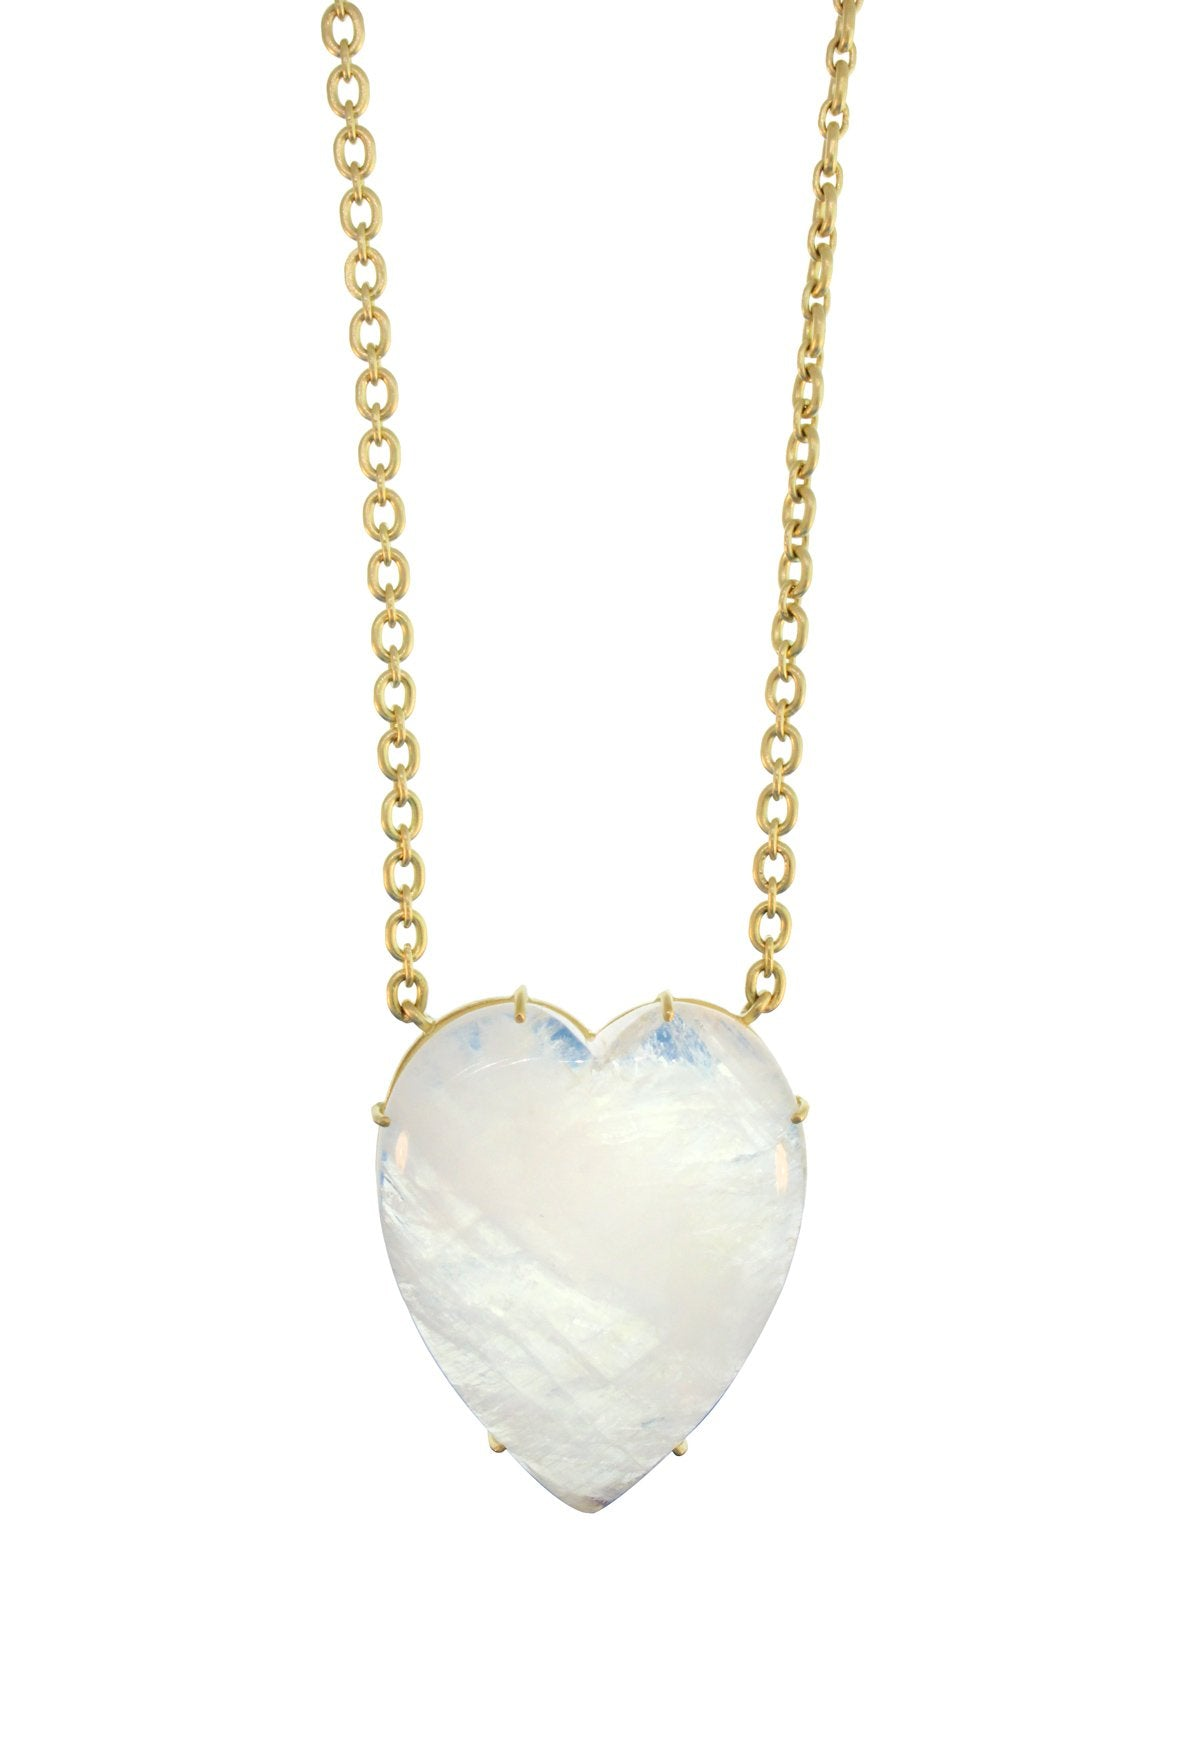 One of a Kind Rainbow Moonstone Heart Necklace